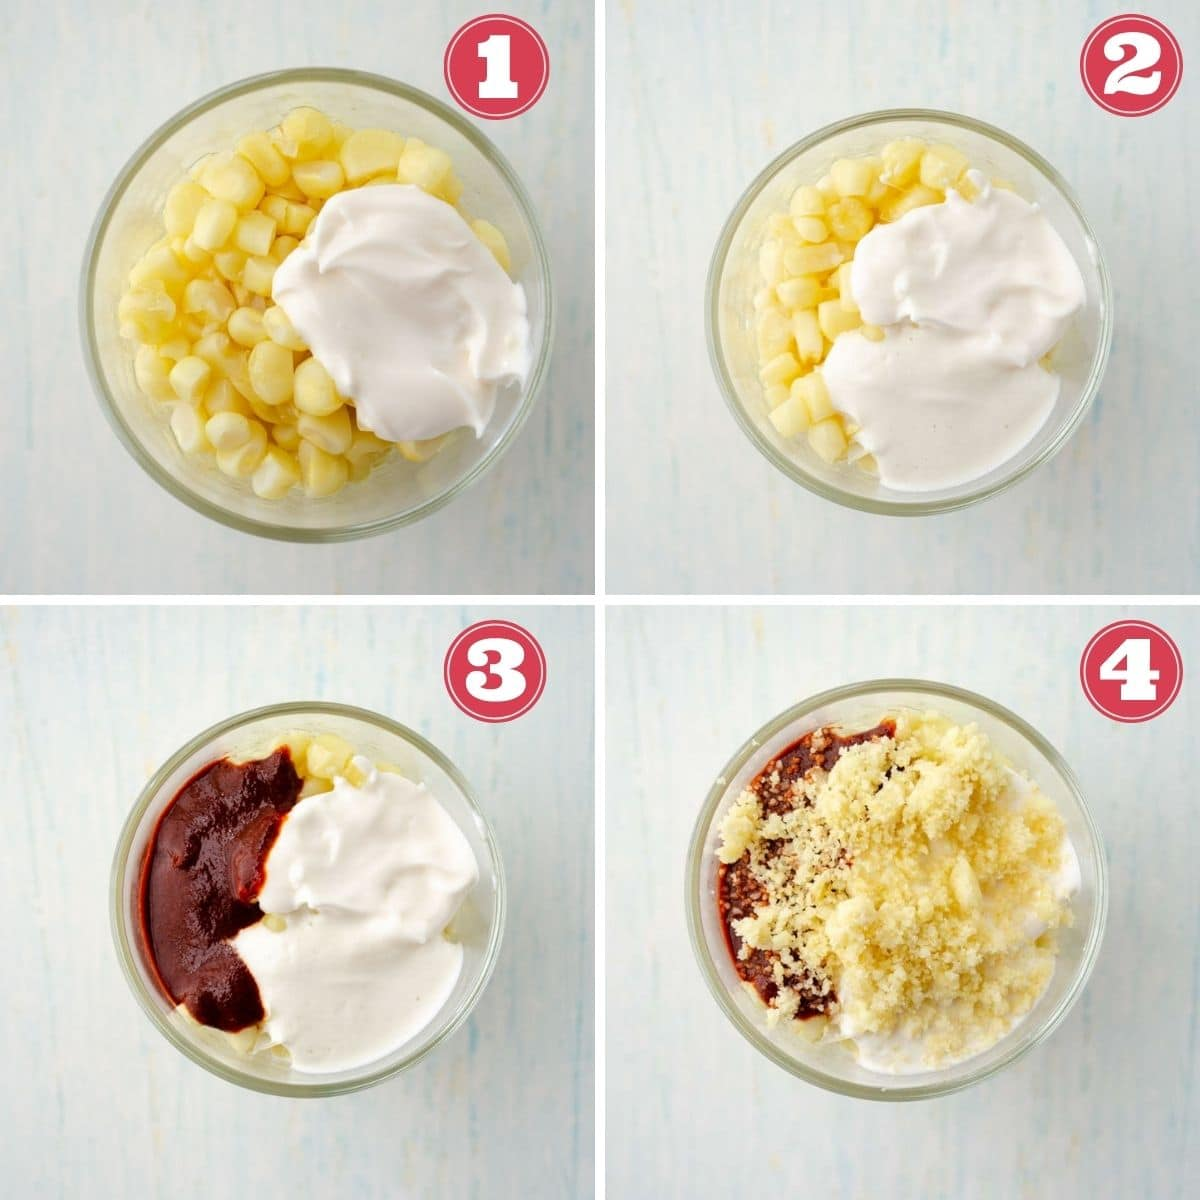 from left to right a cup of corn with mayo, vegan crema added to the cup of corn, chile paste added to cup of corn, vegan queso added to cup of corn